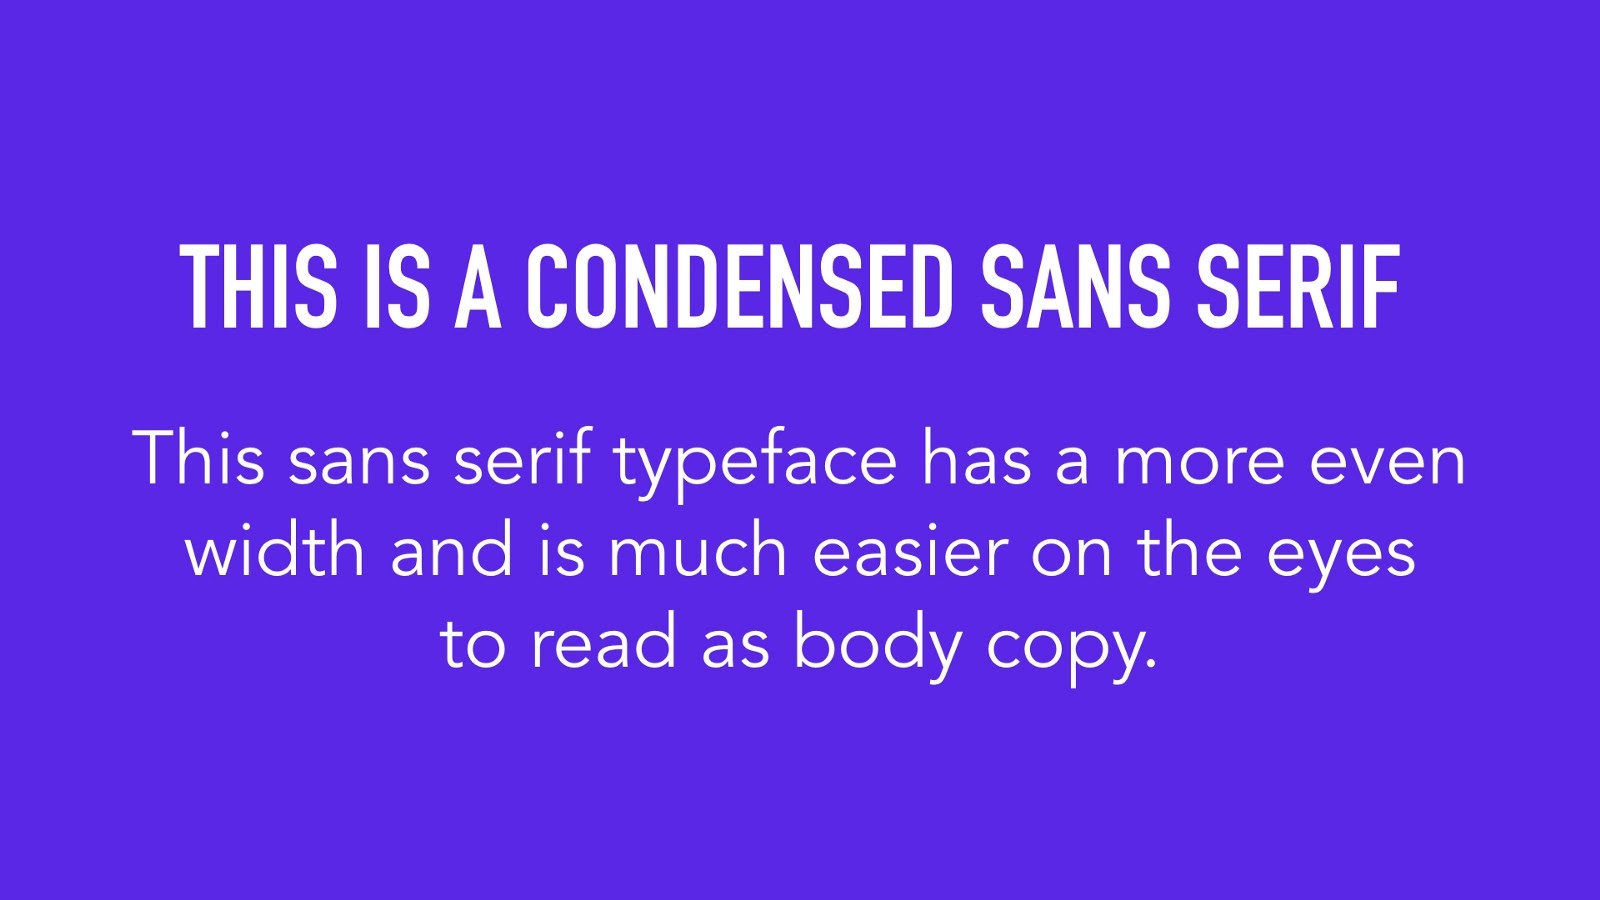 An example of pairing a condensed sans serif with another sans serif typeface